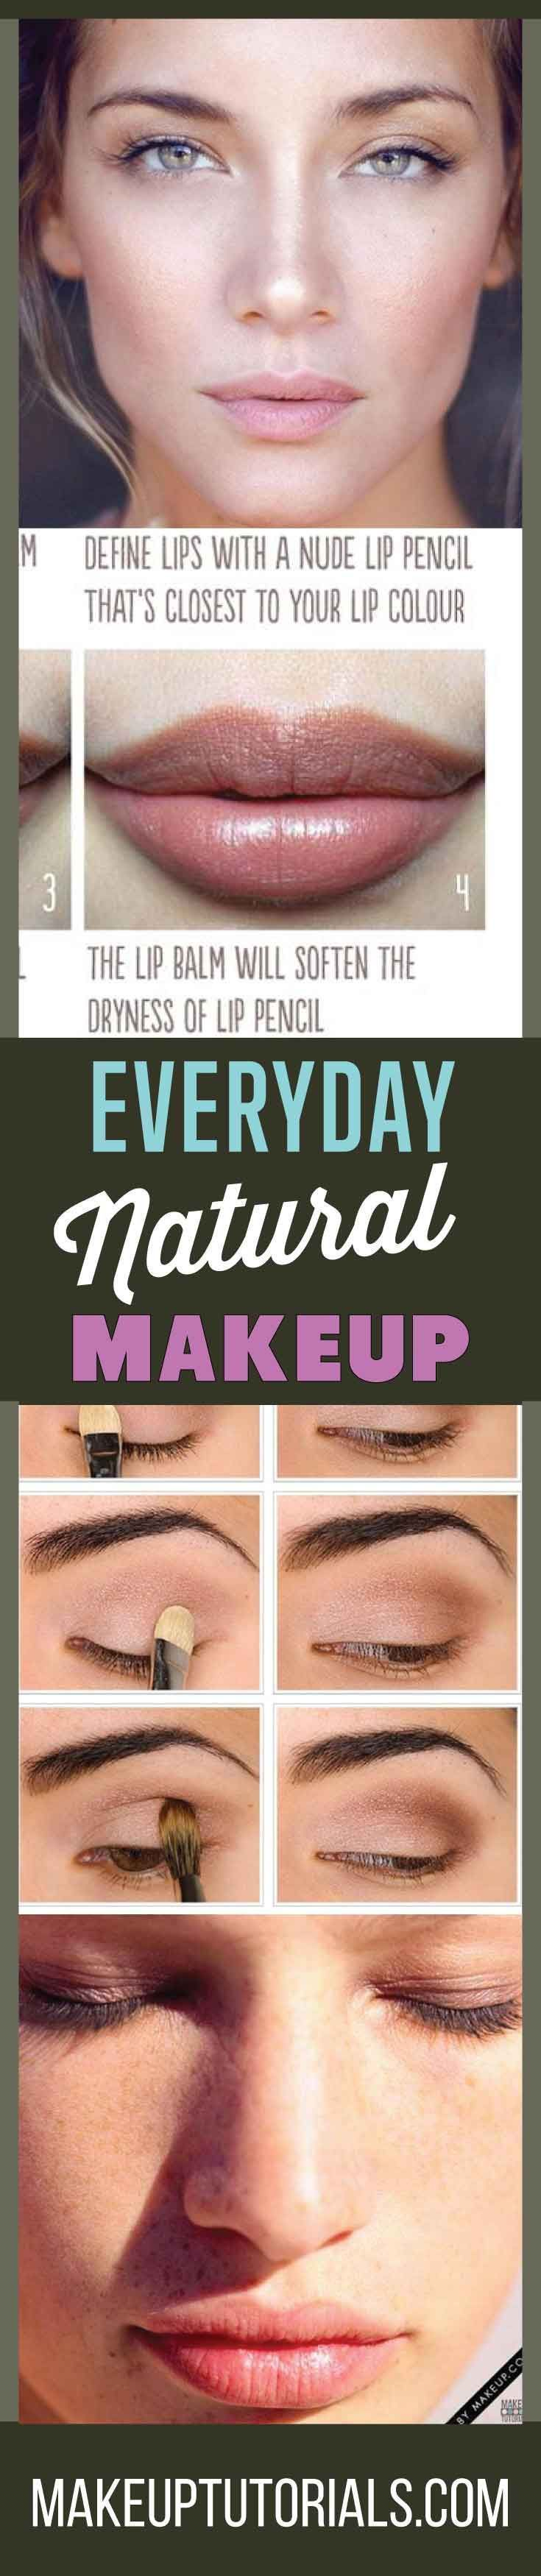 How To Do Everyday Natural Makeup Tutorial | No Makeup Look Makeup Tutorials By Makeup Tutorials. http://makeuptutorials.com/everyday-natural-makeup-tutorials/